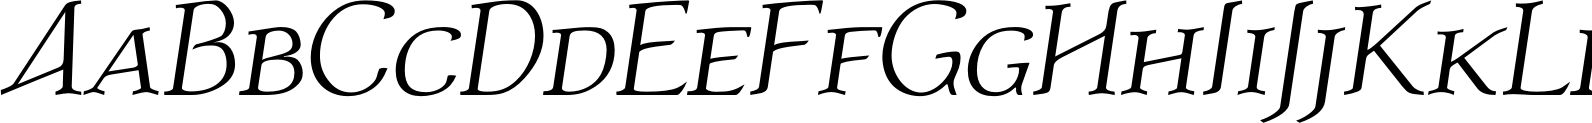 Atlantic Serif SC Regular Italic